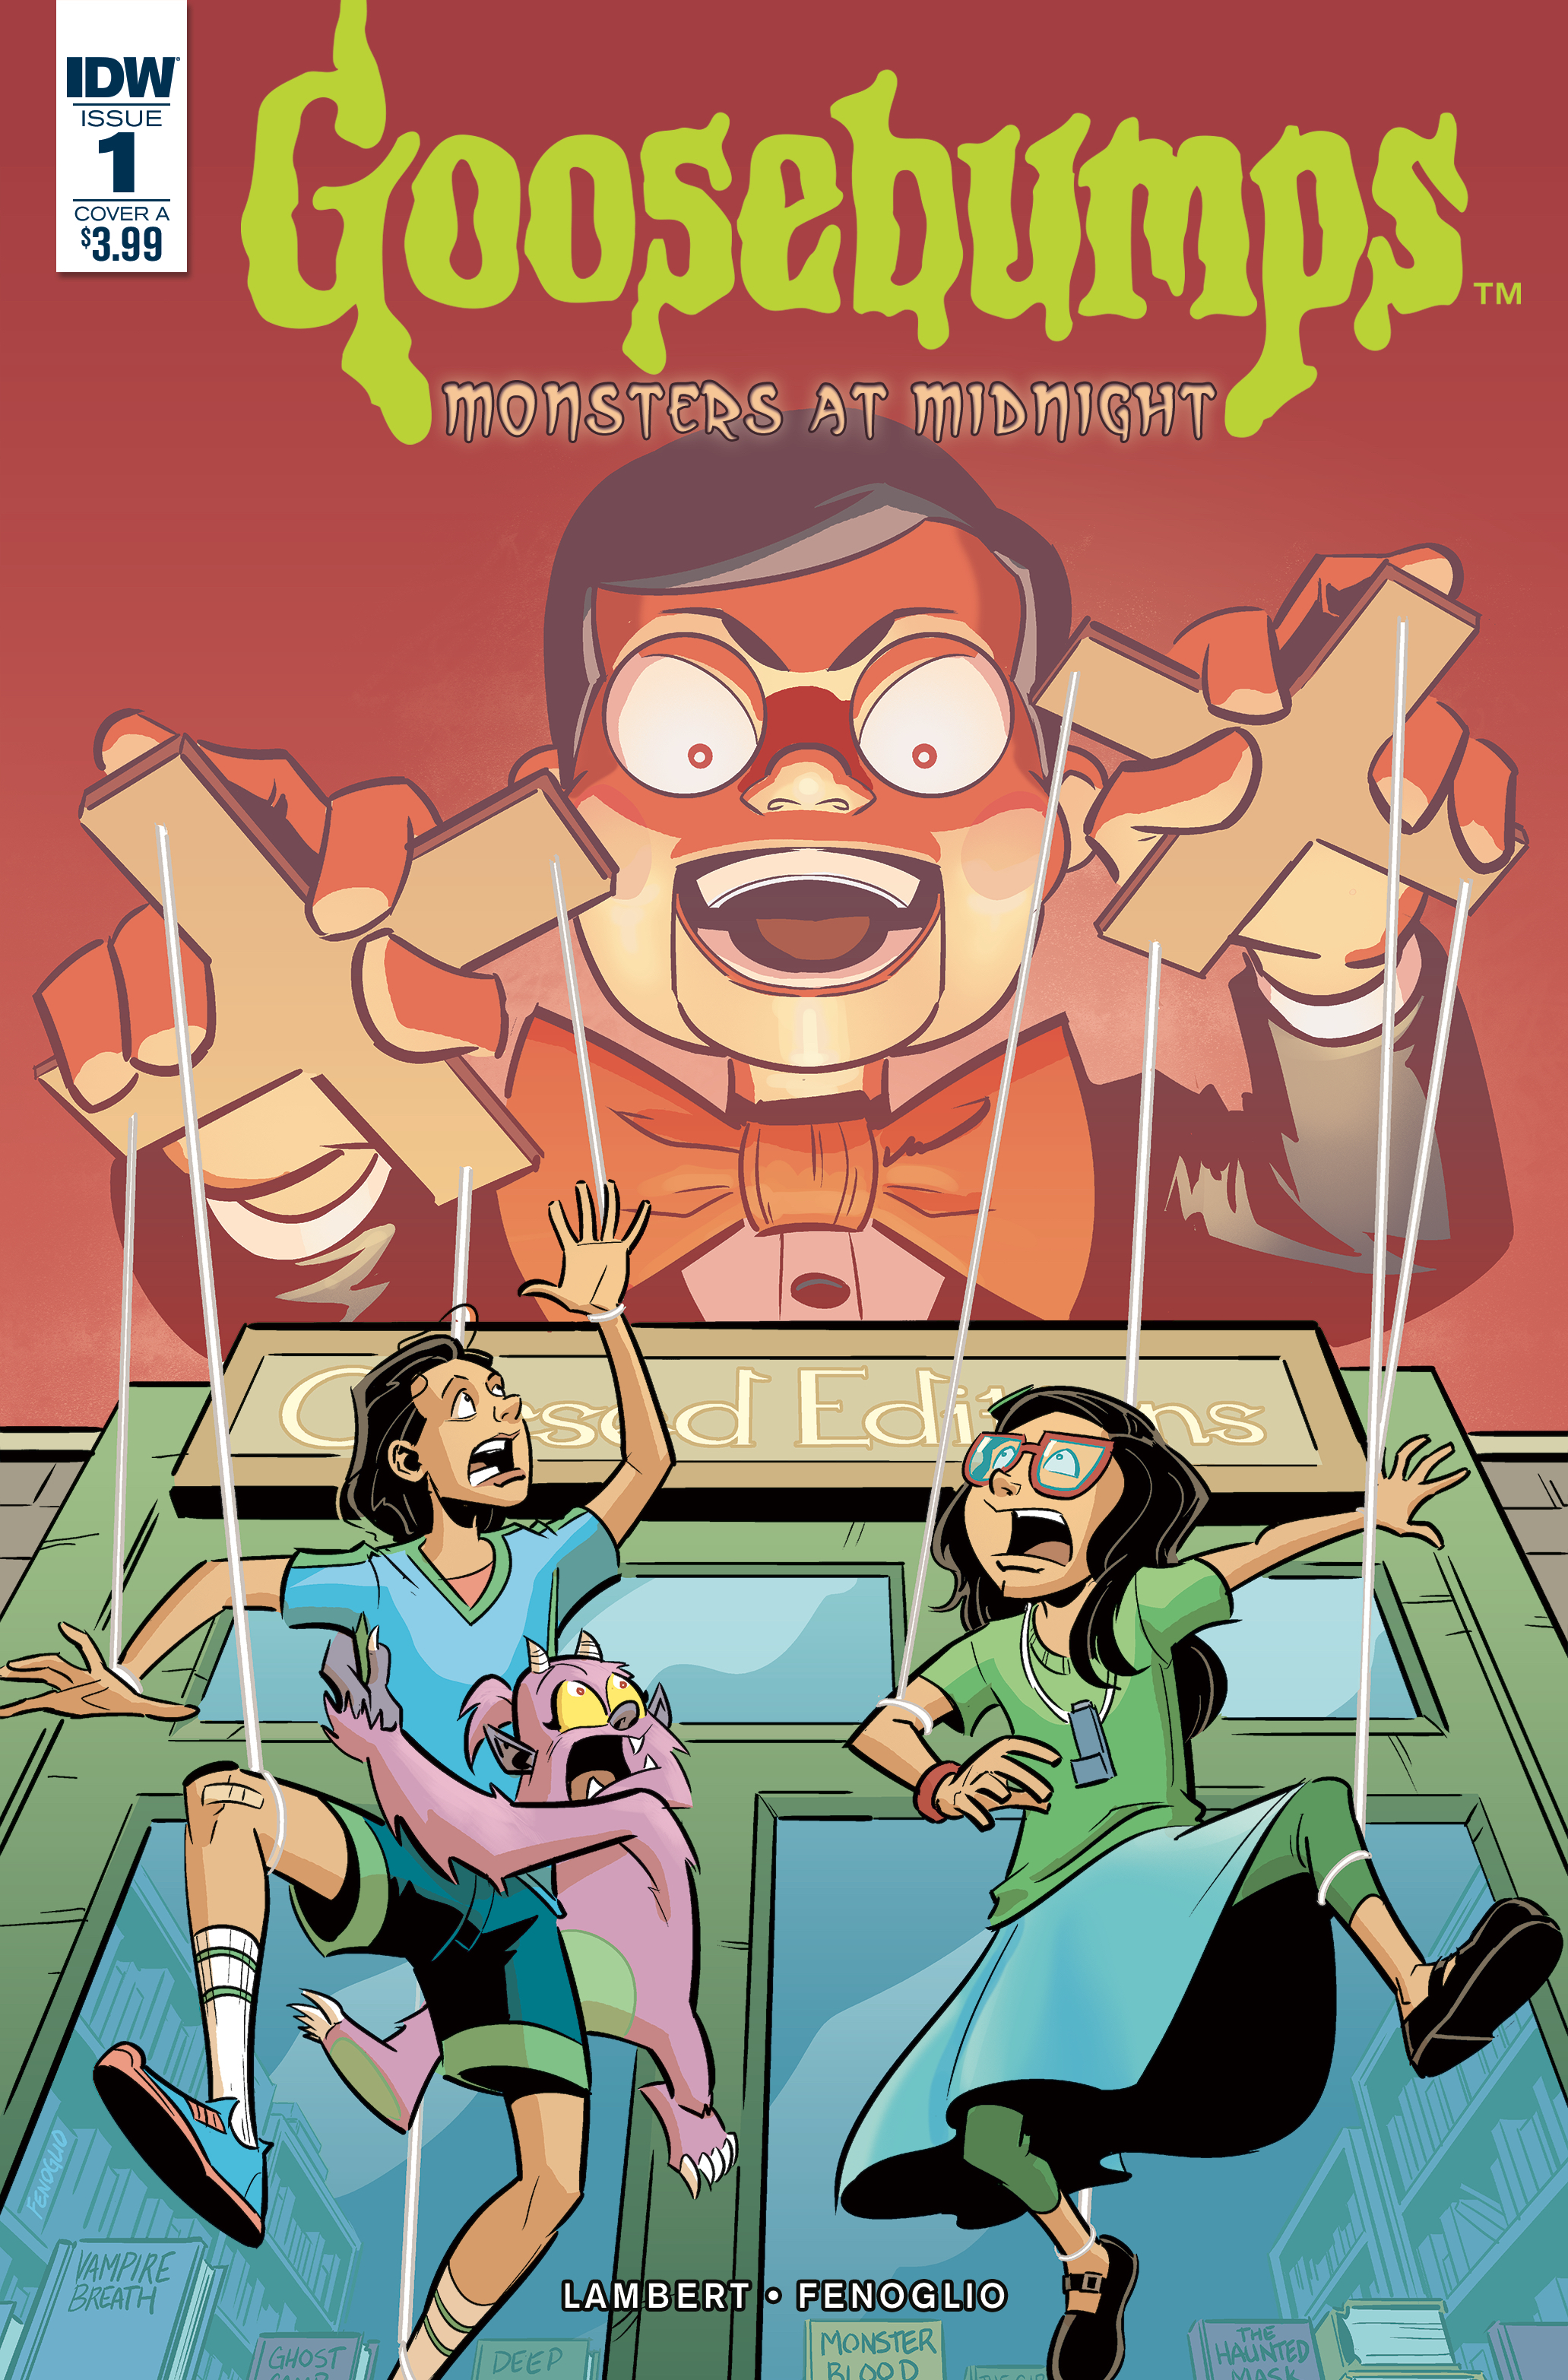 Aug170377 Goosebumps Monsters At Midnight 1 Of 3 Cvr A Fenoglio Previews World